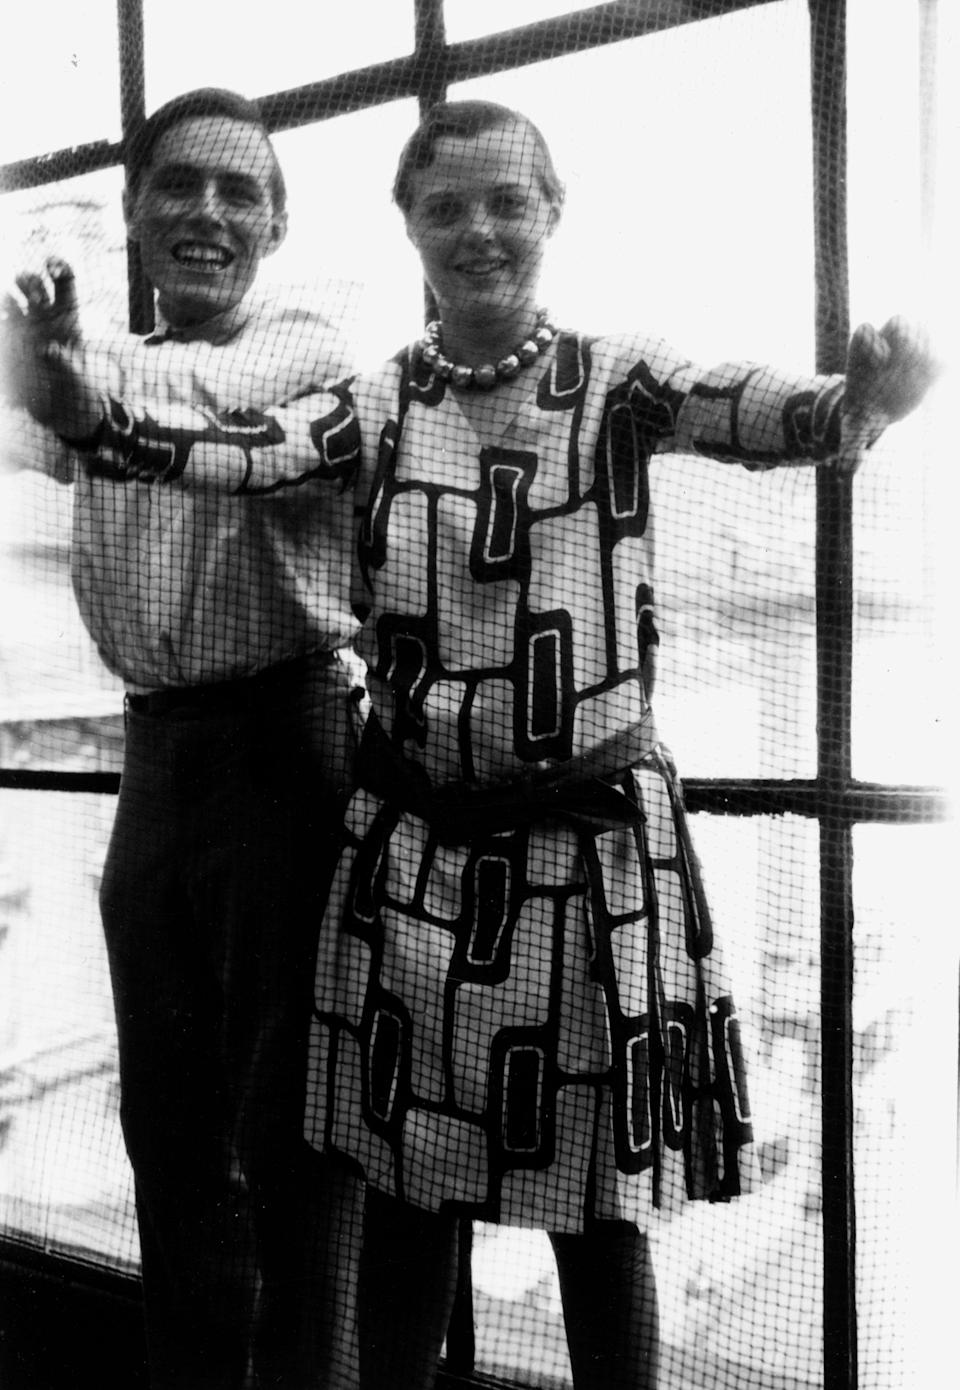 Charlotte Perriand with Alfred Roth in Place Saint-Sulpice apartment-studio, Paris, 1928 (AChP/ADAGP, Paris and DACS, London 2021)